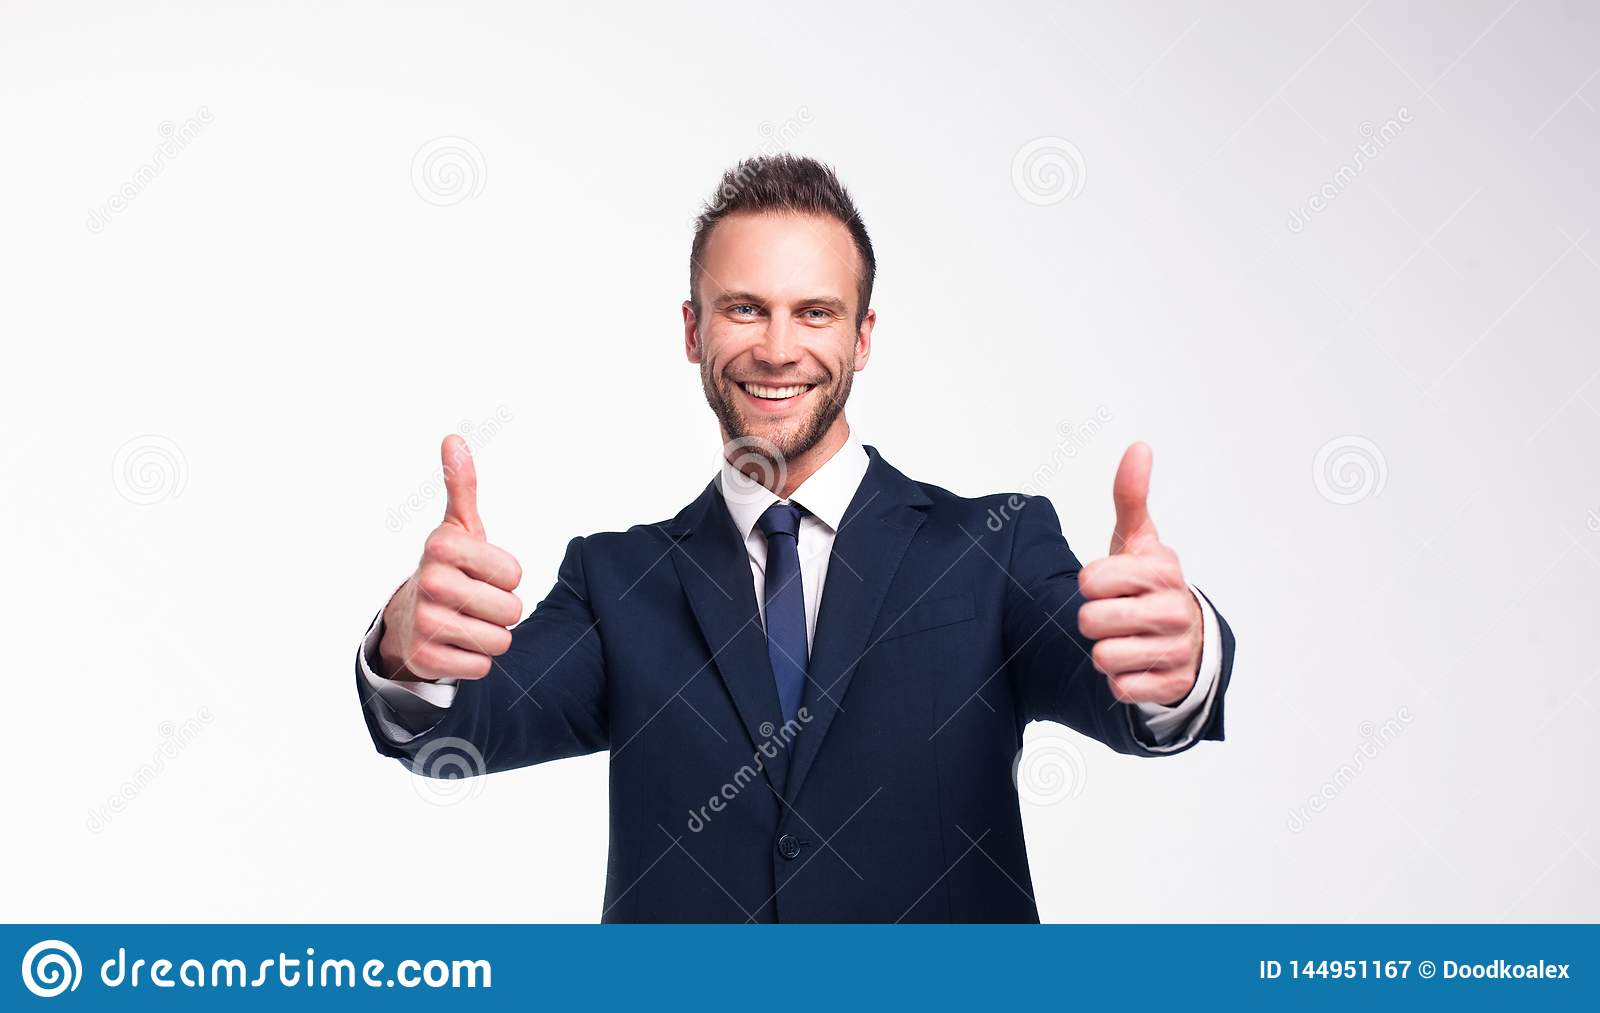 Smiling businessman over a white background